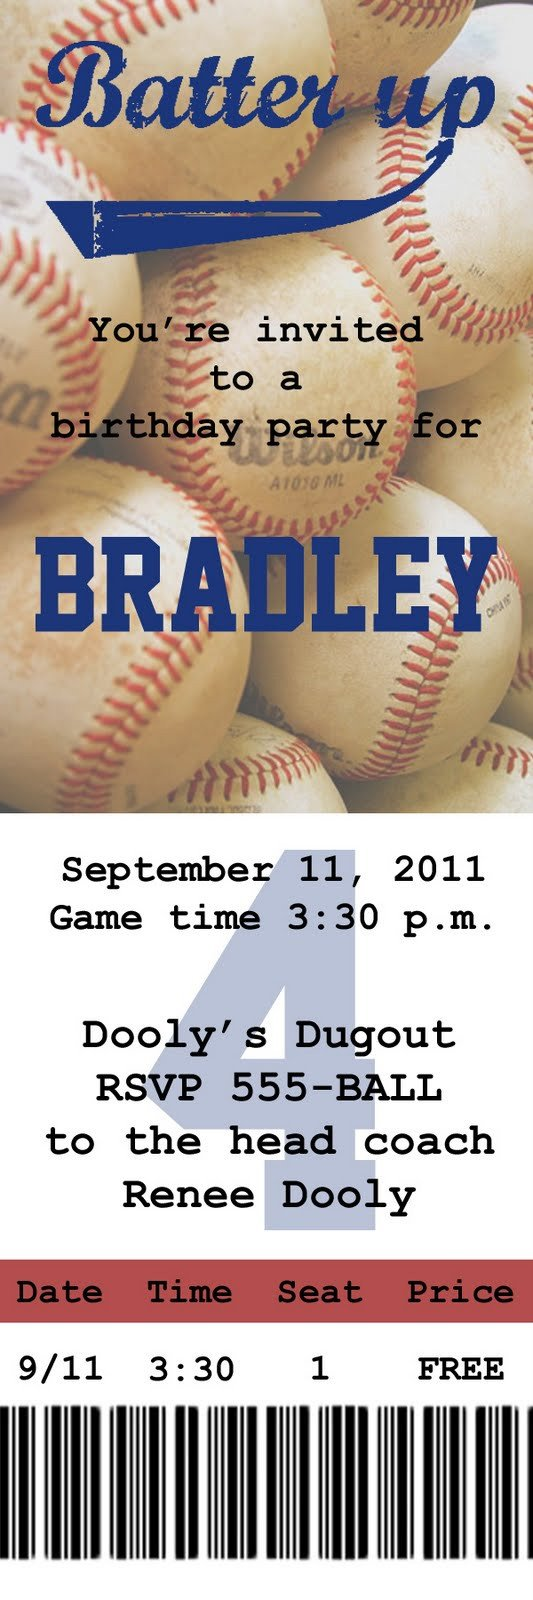 Baseball Ticket Invitation Template Free Gobs Of Giggles Baseball Party Invite